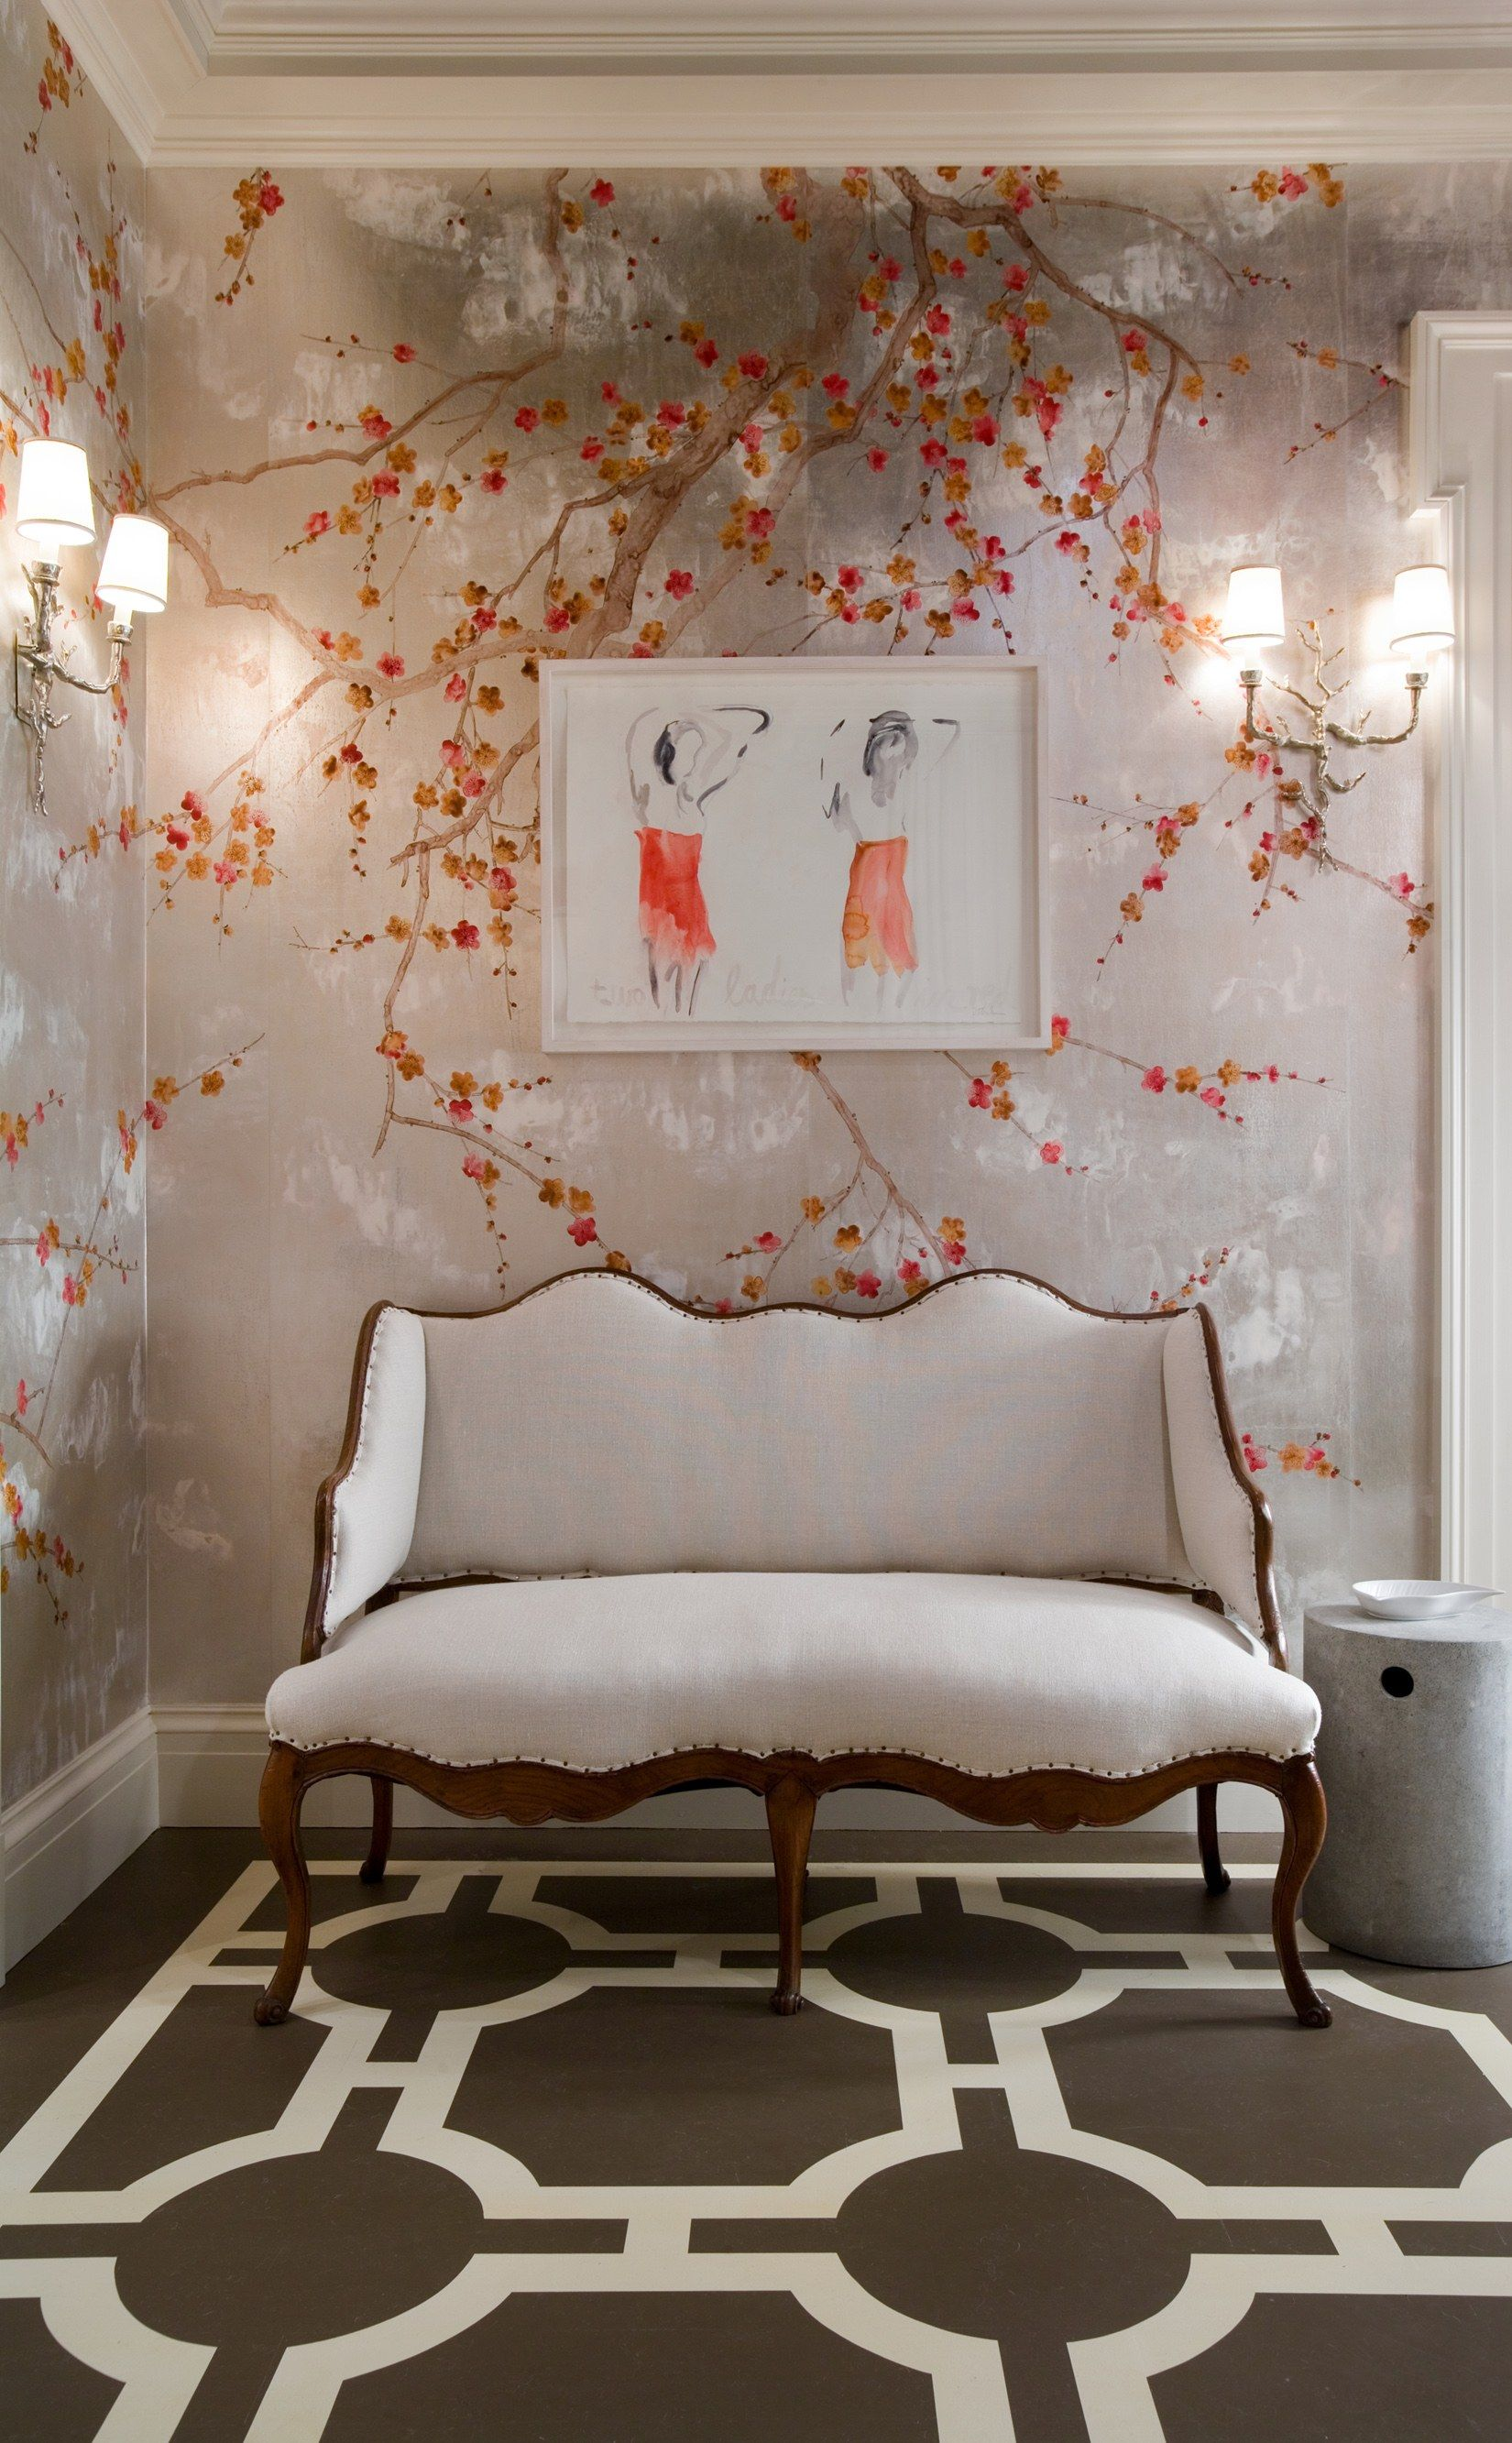 Imperial Home Decor Group Wallpaper Where To Find Fantastic Floral Wallpaper Flower Wallpaper Home